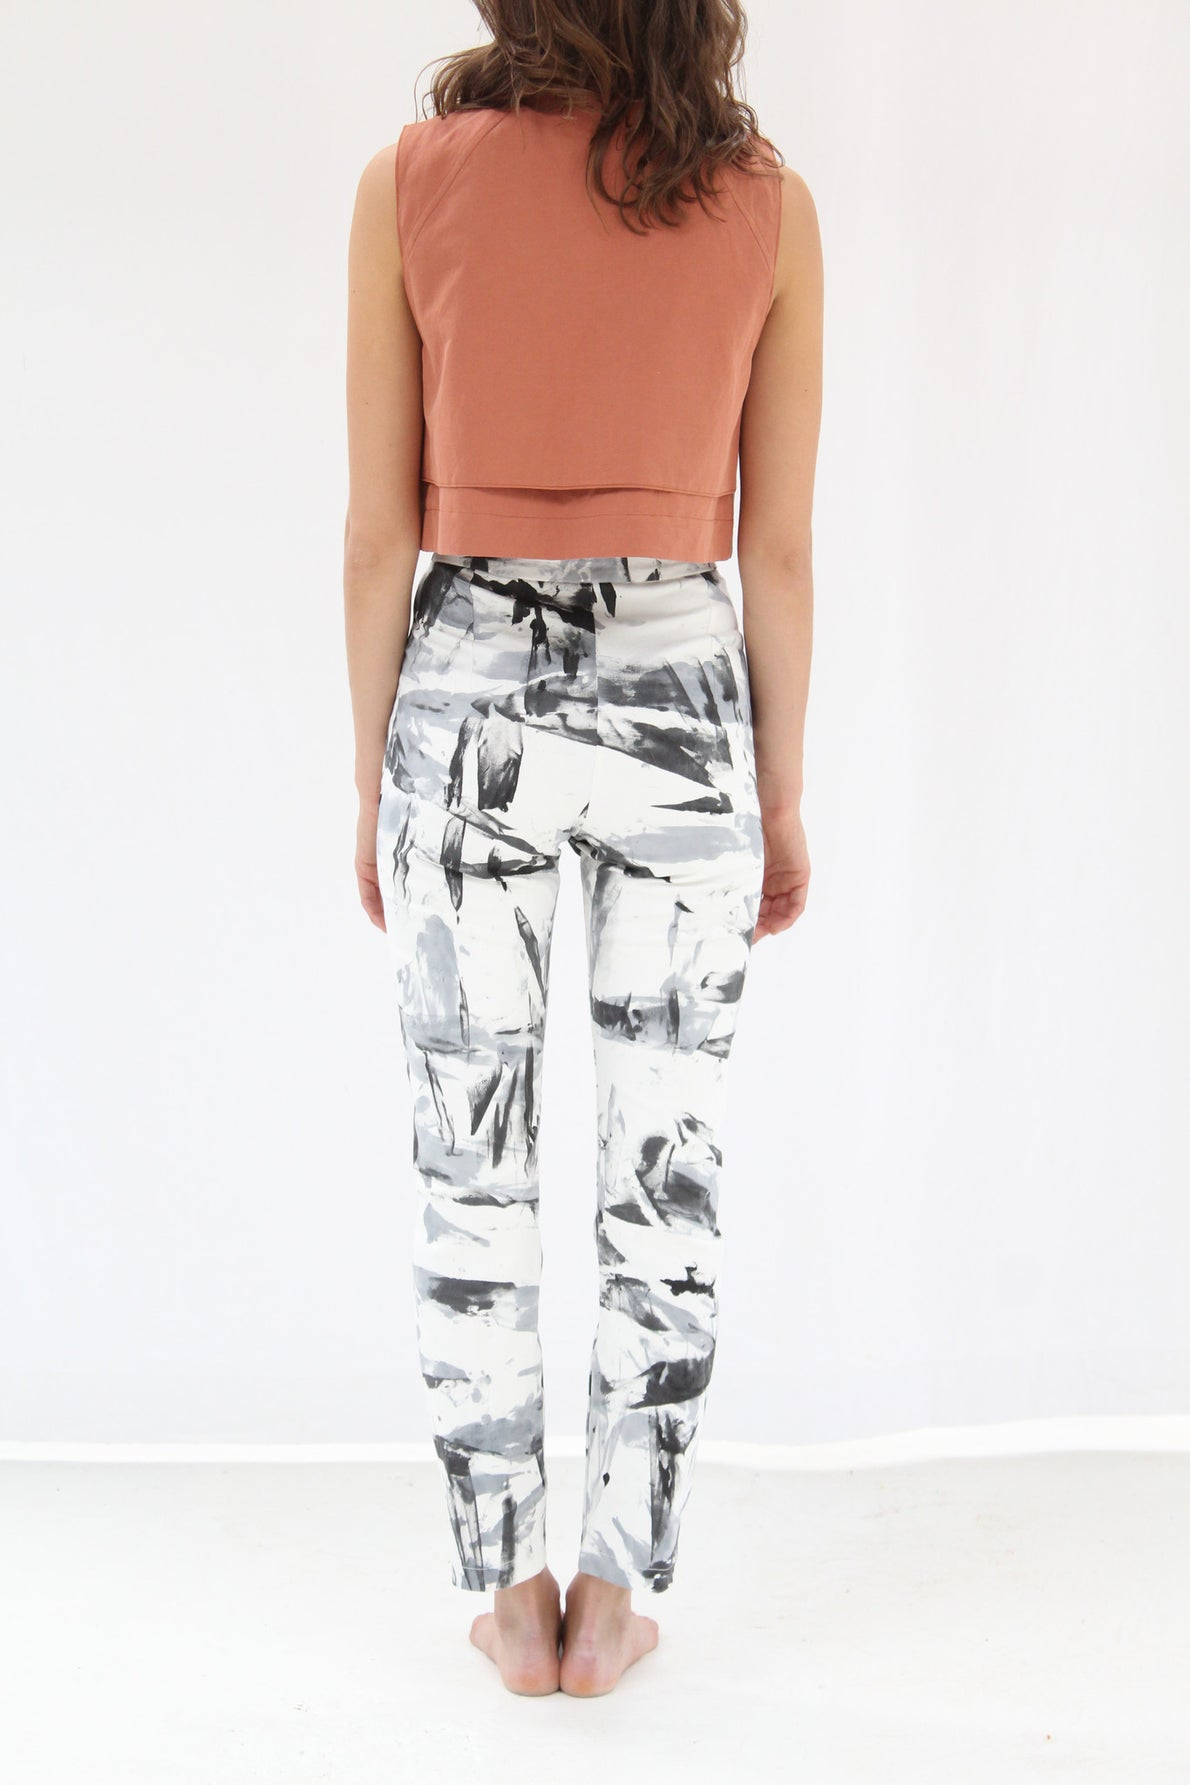 Osei Duro Vapos Trouser Black White Abstract